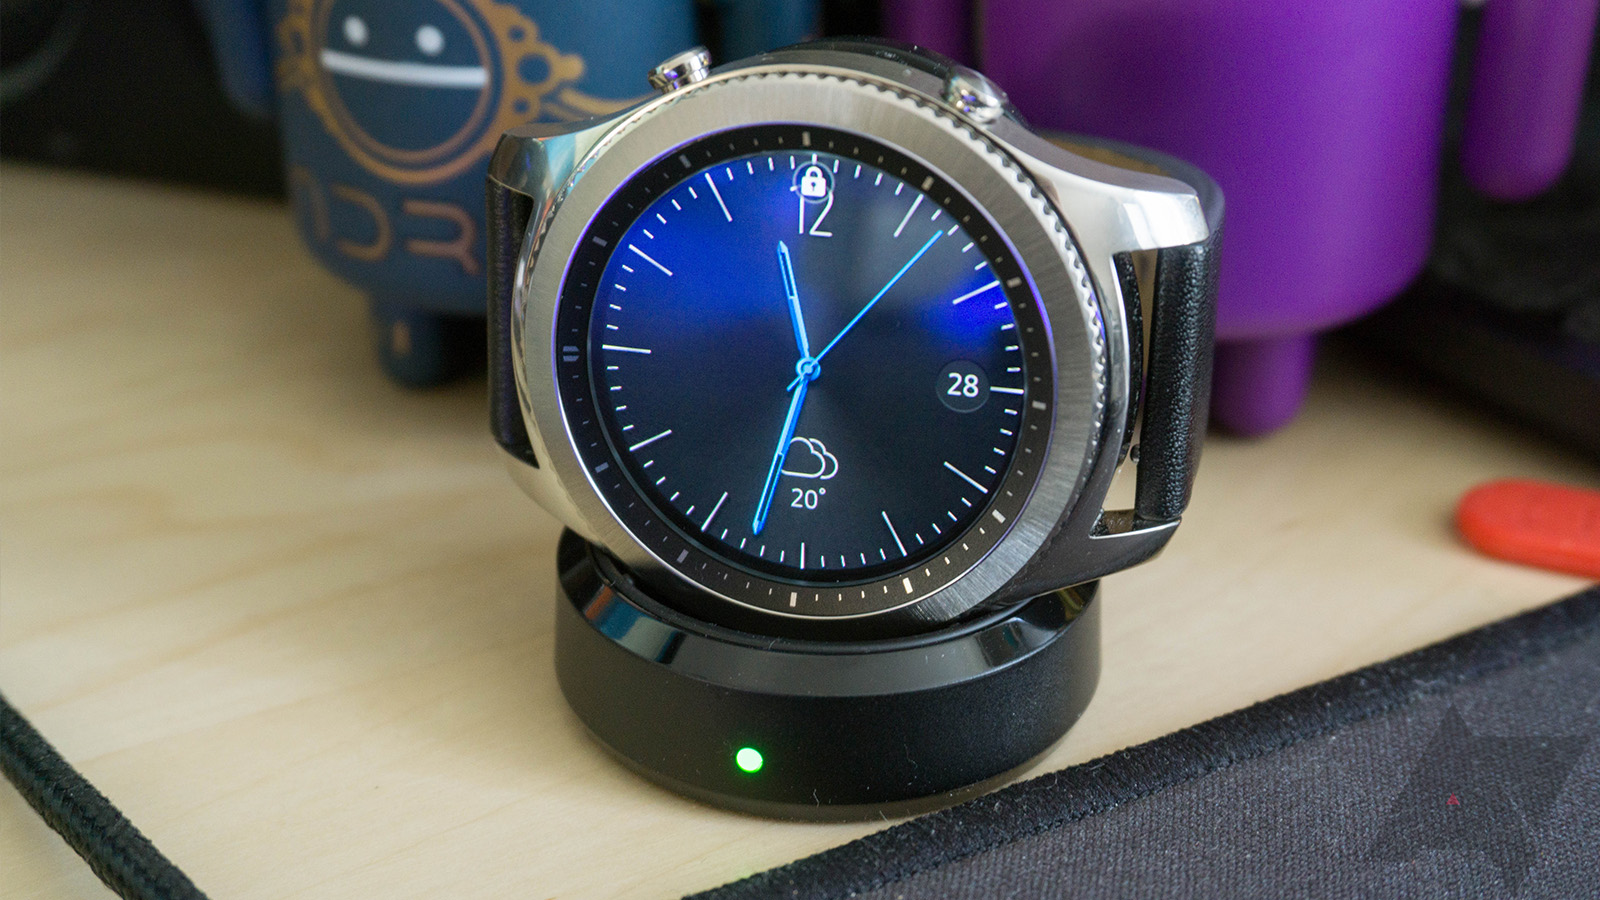 Samsung Gear S3 receives major software update with lots of new features